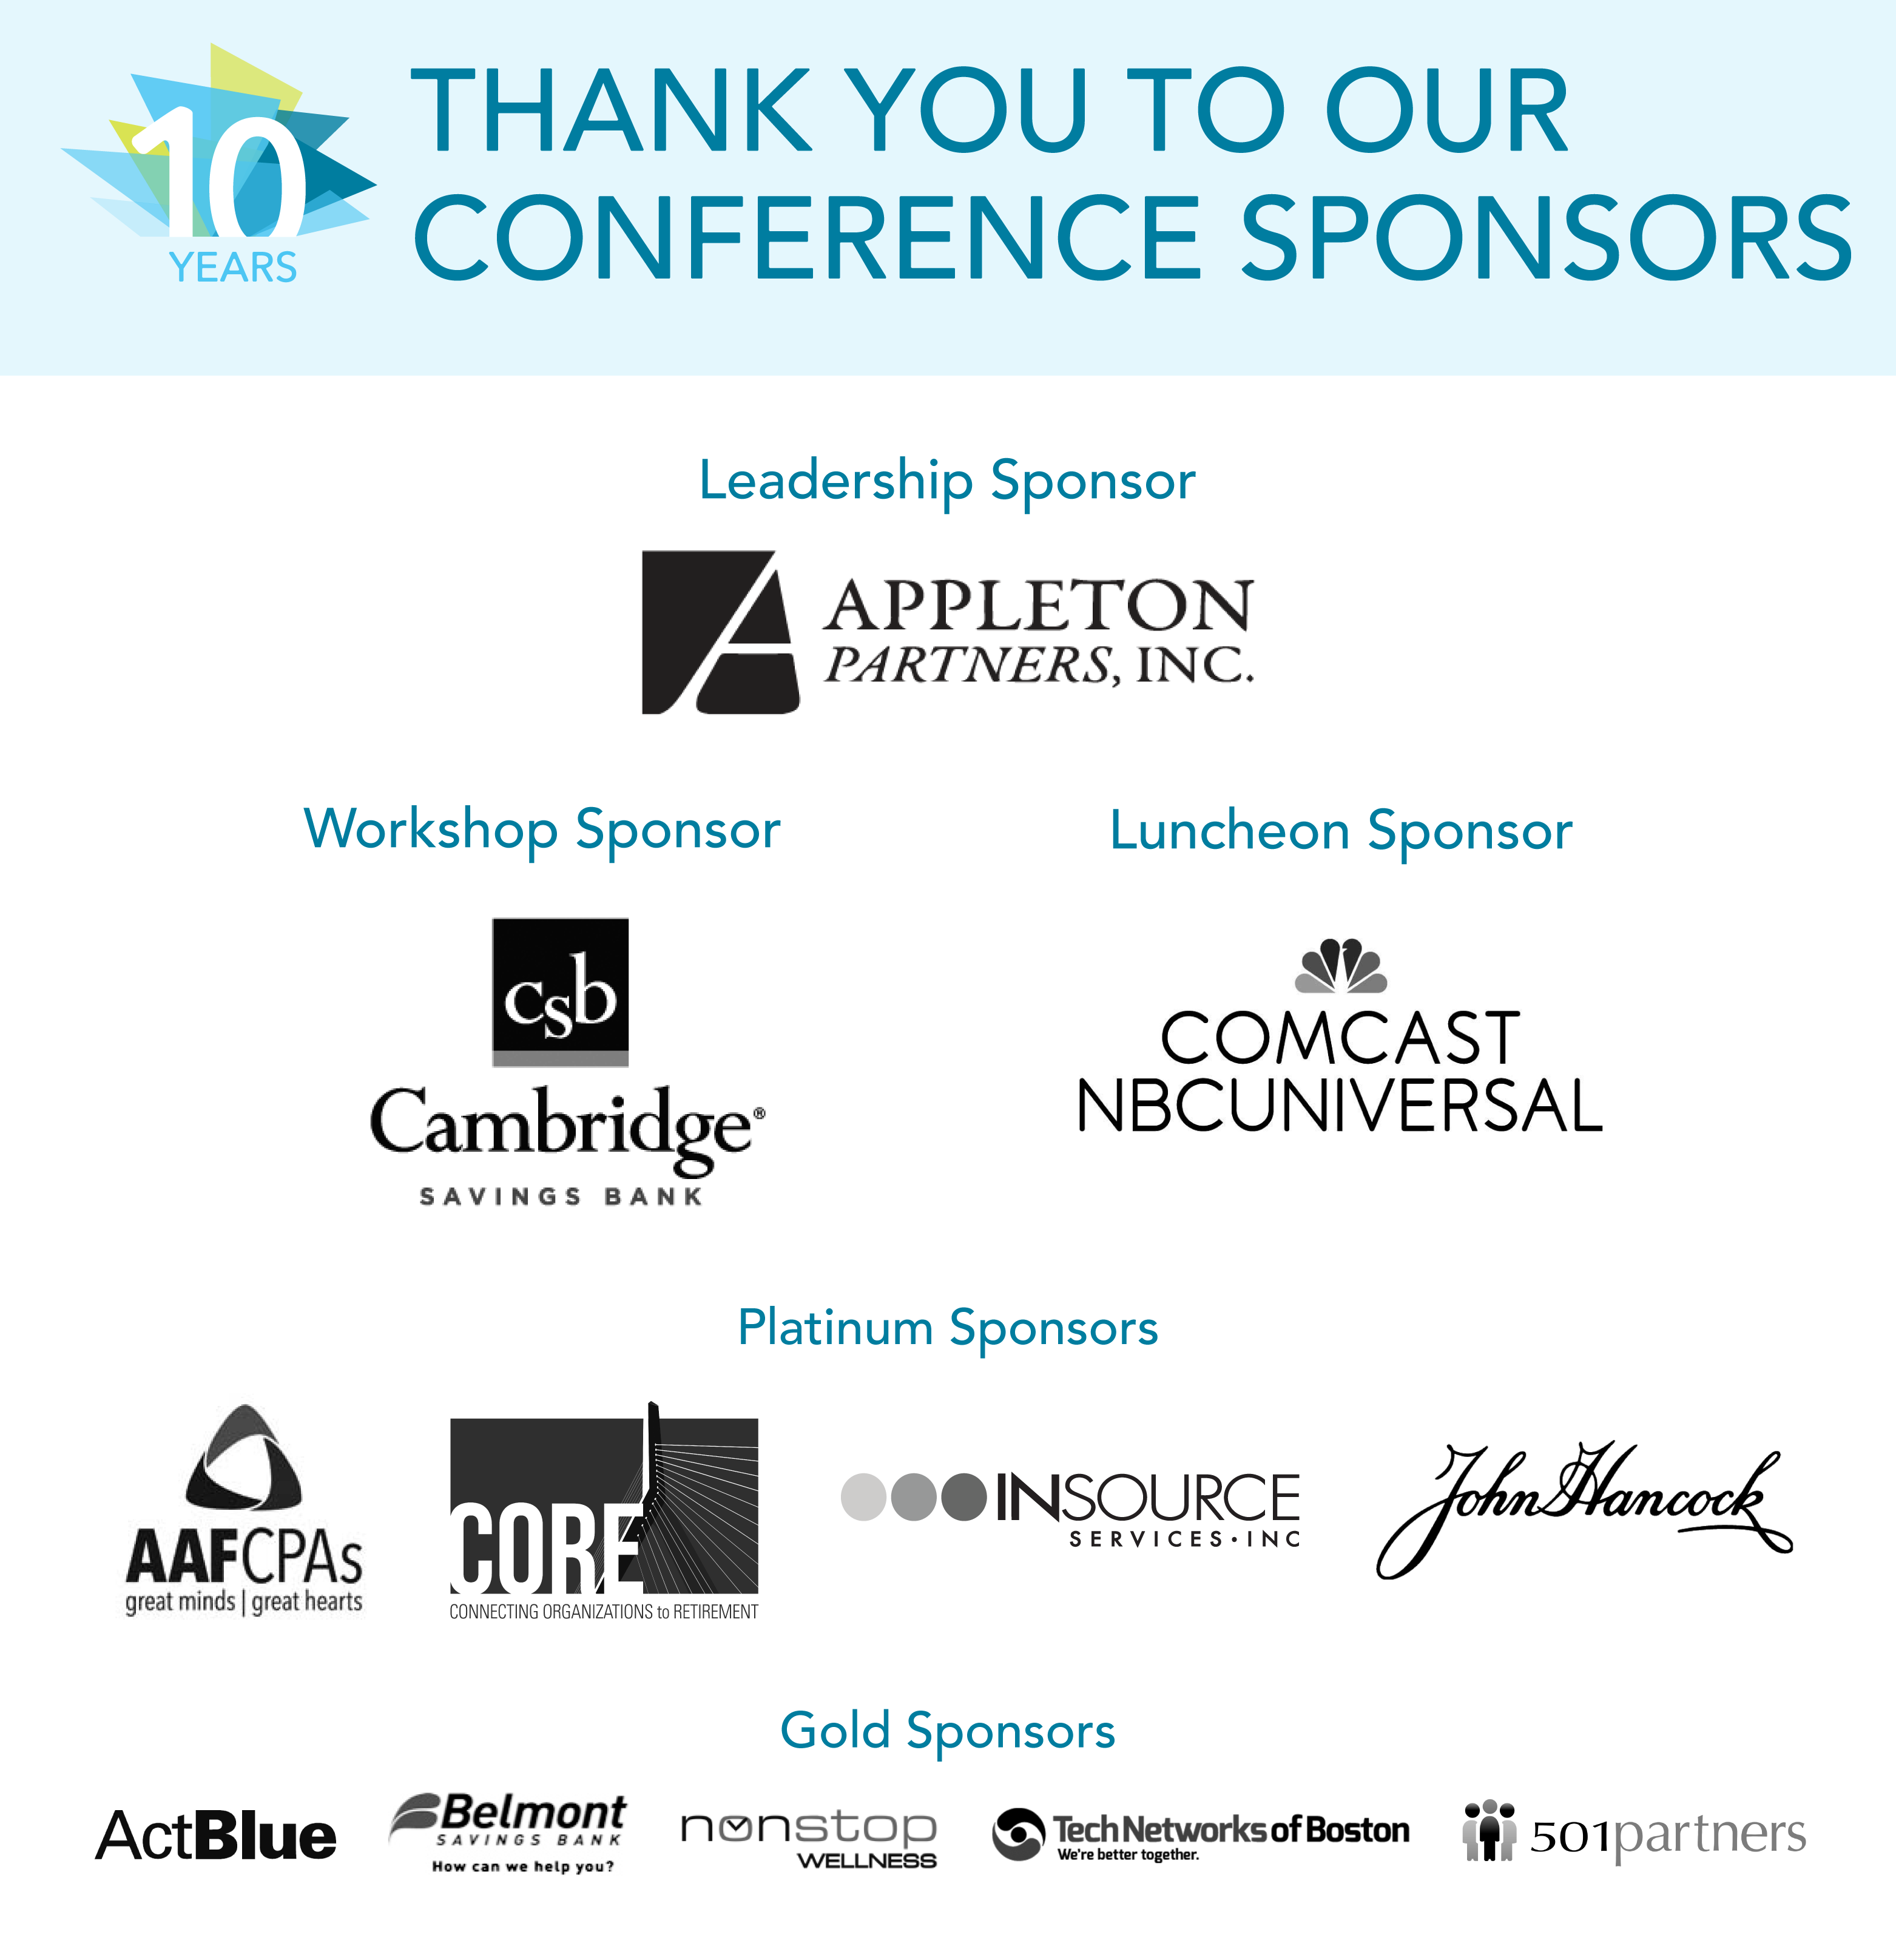 2017 MNN Conference Sponsors Thank You